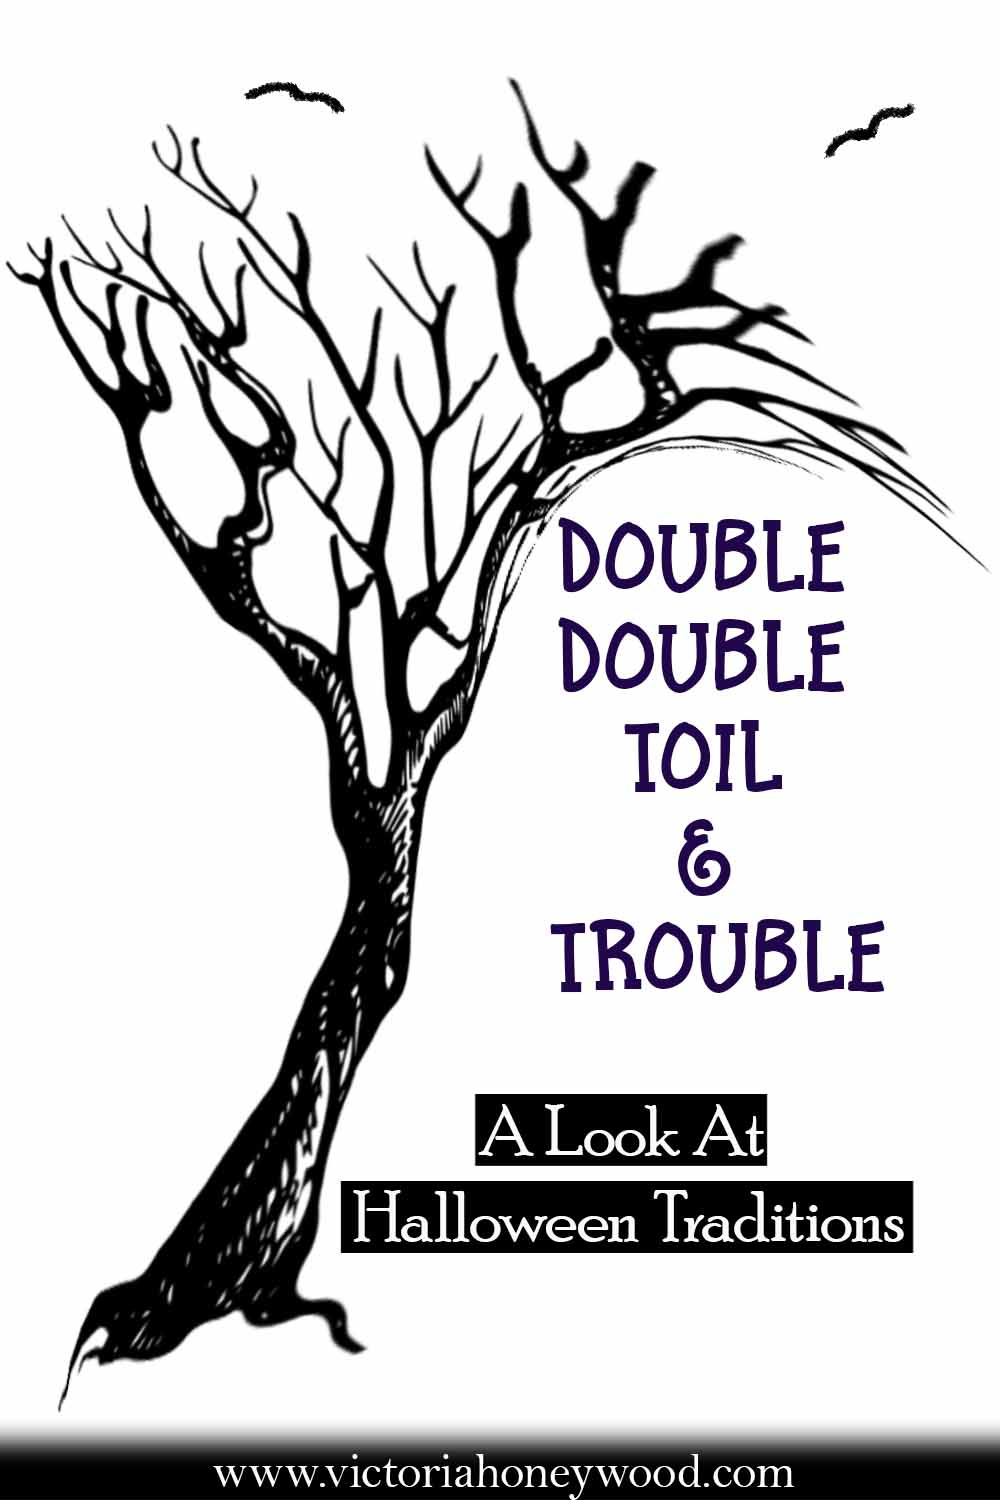 A look at Halloween customs and traditions throughout history. #halloween #halloweentraditions #halloweencustoms